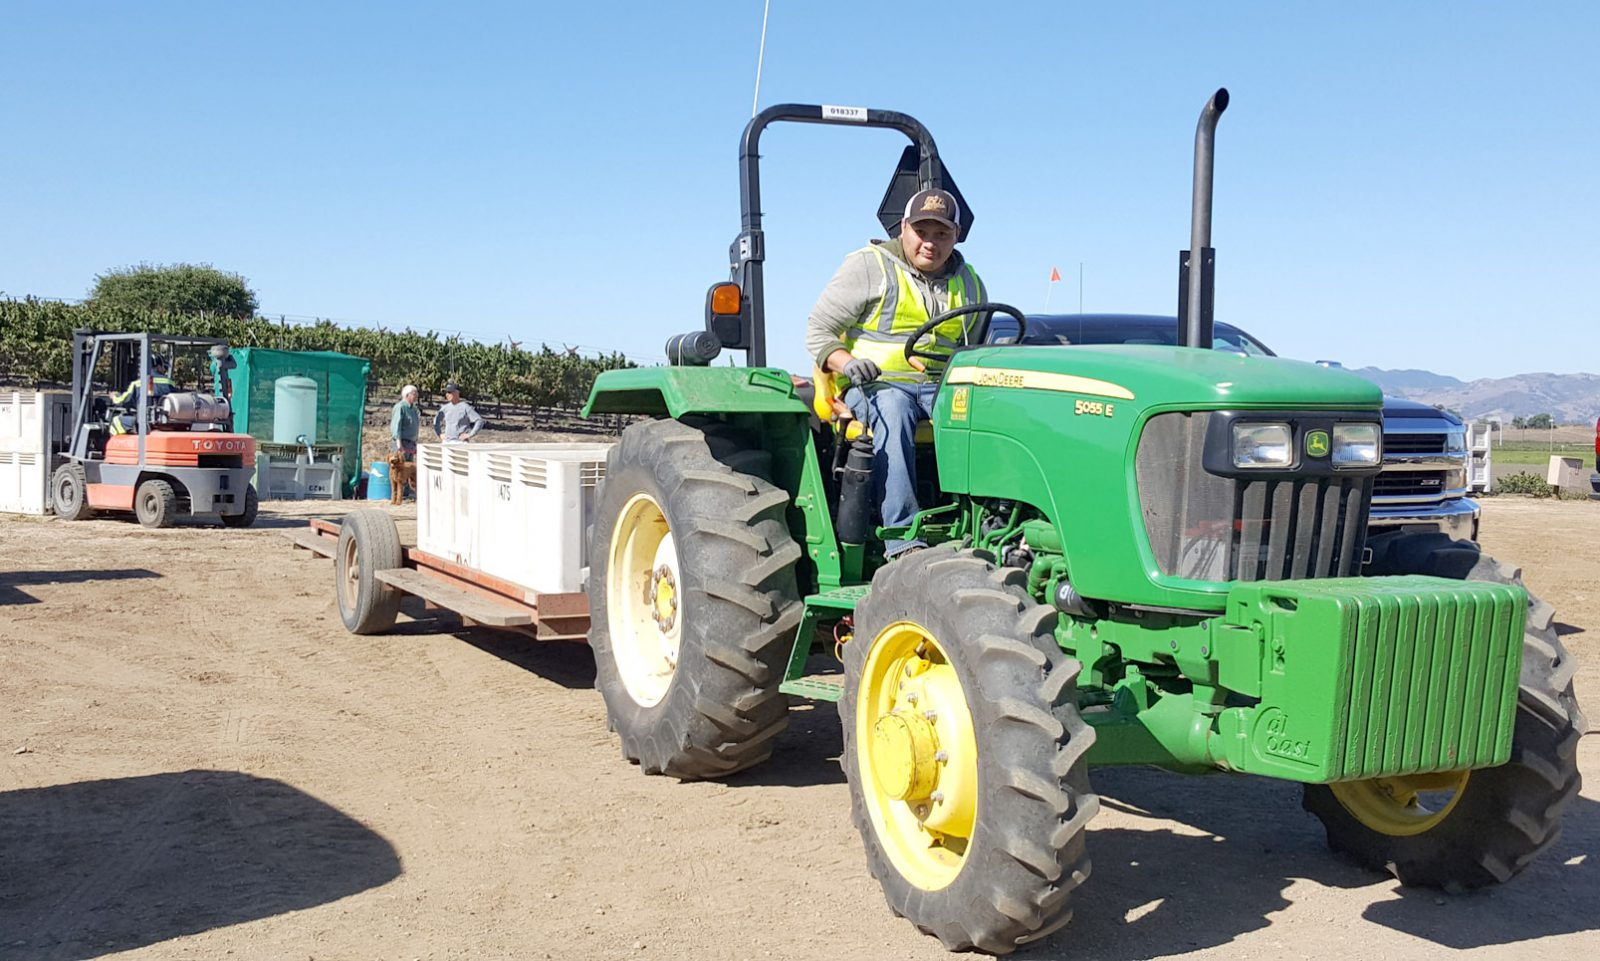 Worker hauling crates of grapes with a green tractor